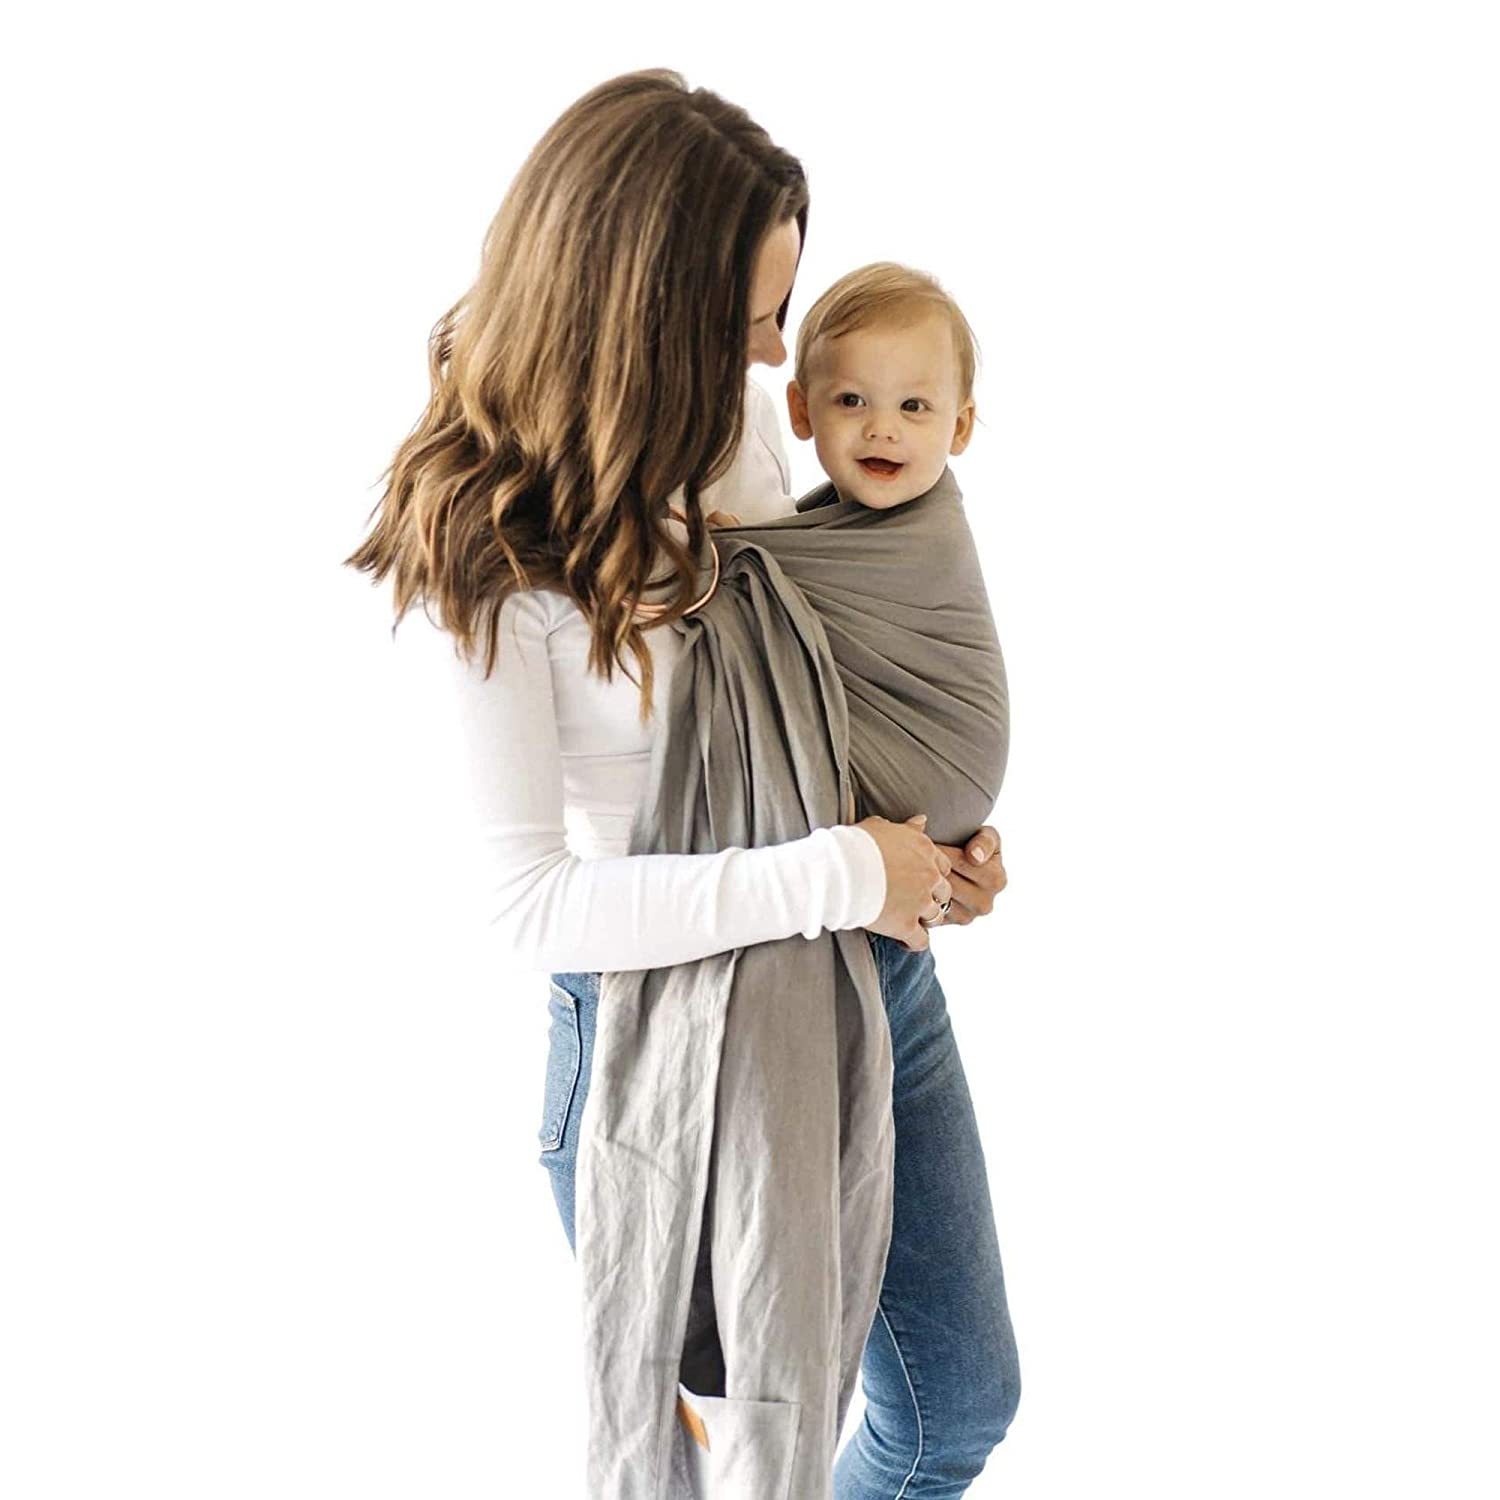 Kyte BABY Ring Slings Holds Babies from 8 to 35lbs - 100% Pre-Washed Linen 80 Inches Long, Extremely Comfortable with Full Support (Birch)